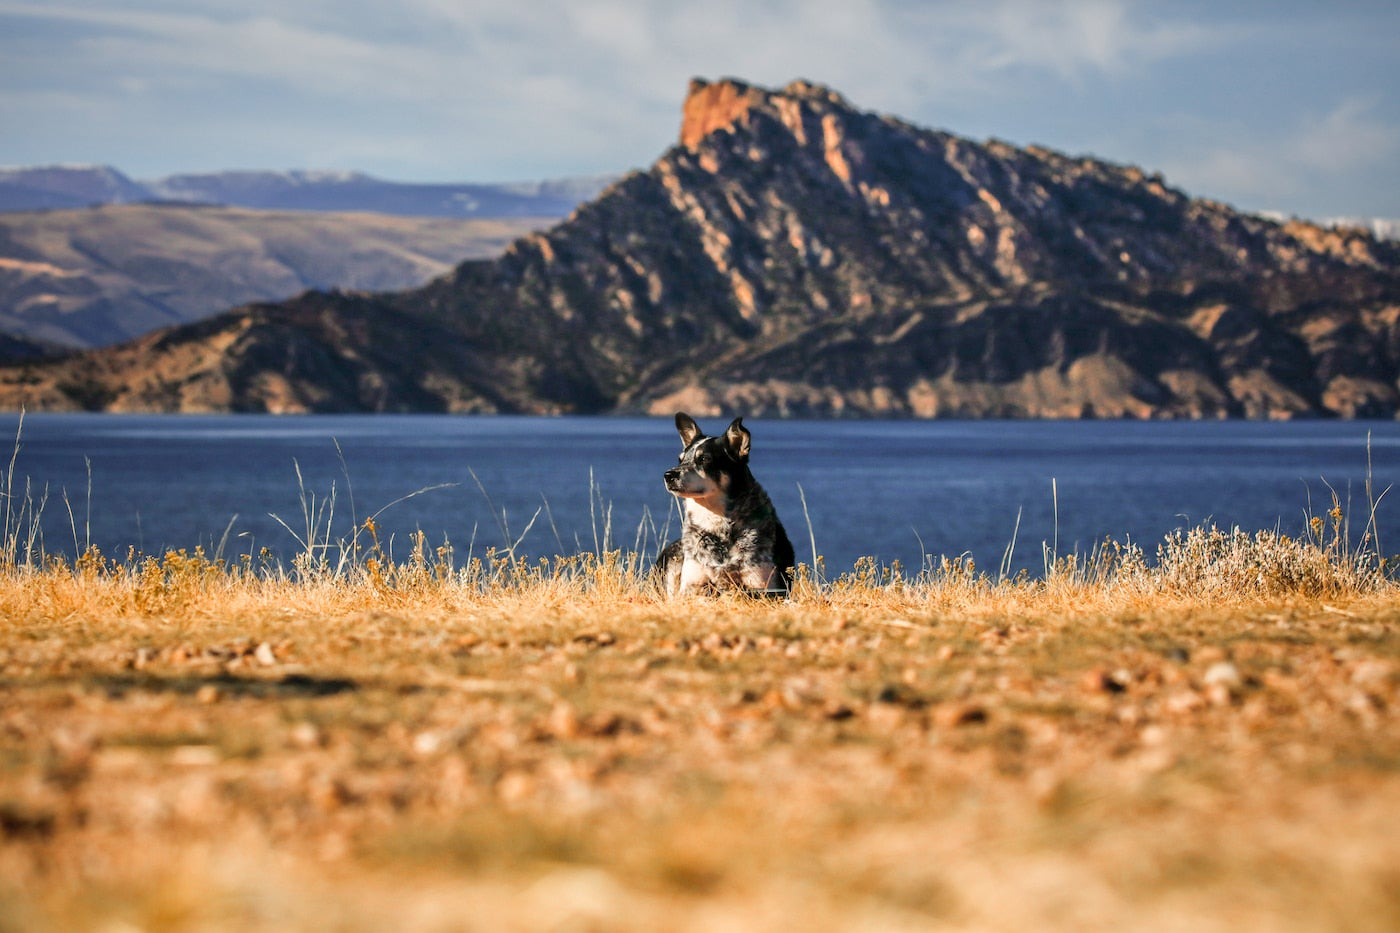 Dog sitting in a field the foreground with water and a large rock formation in the background.